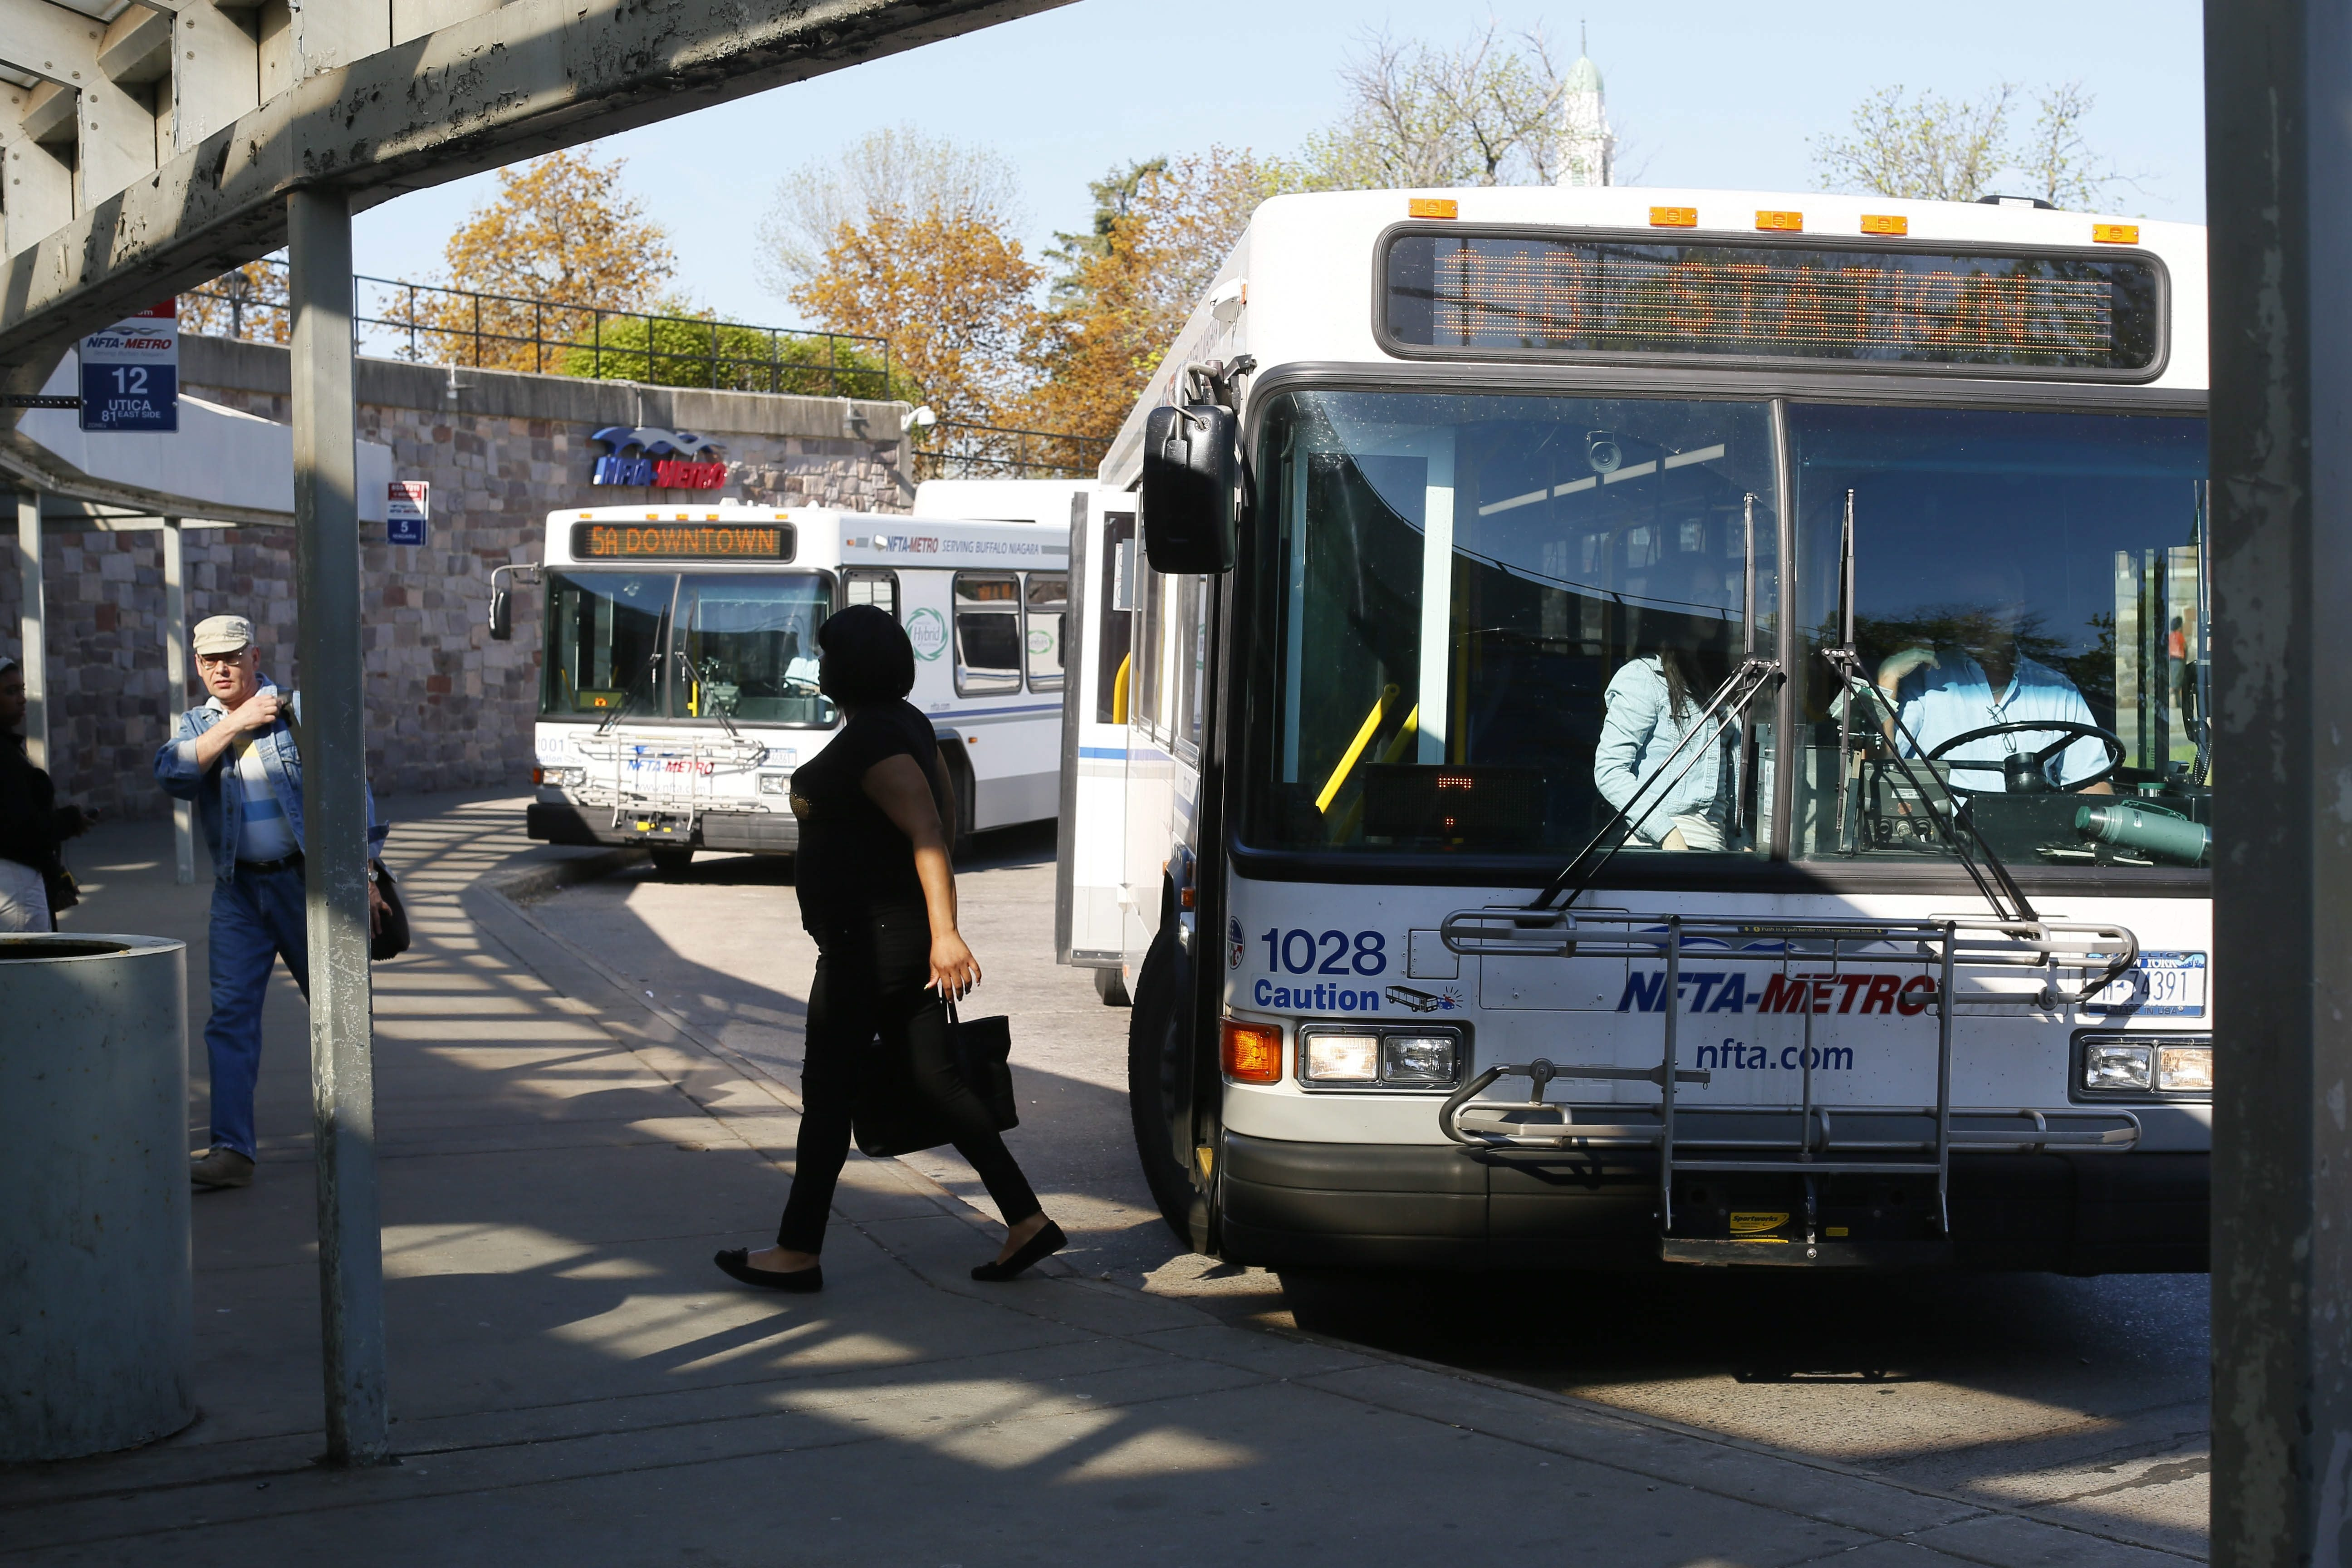 Transferring from the bus to Metro Rail at UB's South Campus, where the rail ends, can be tough and time consuming.